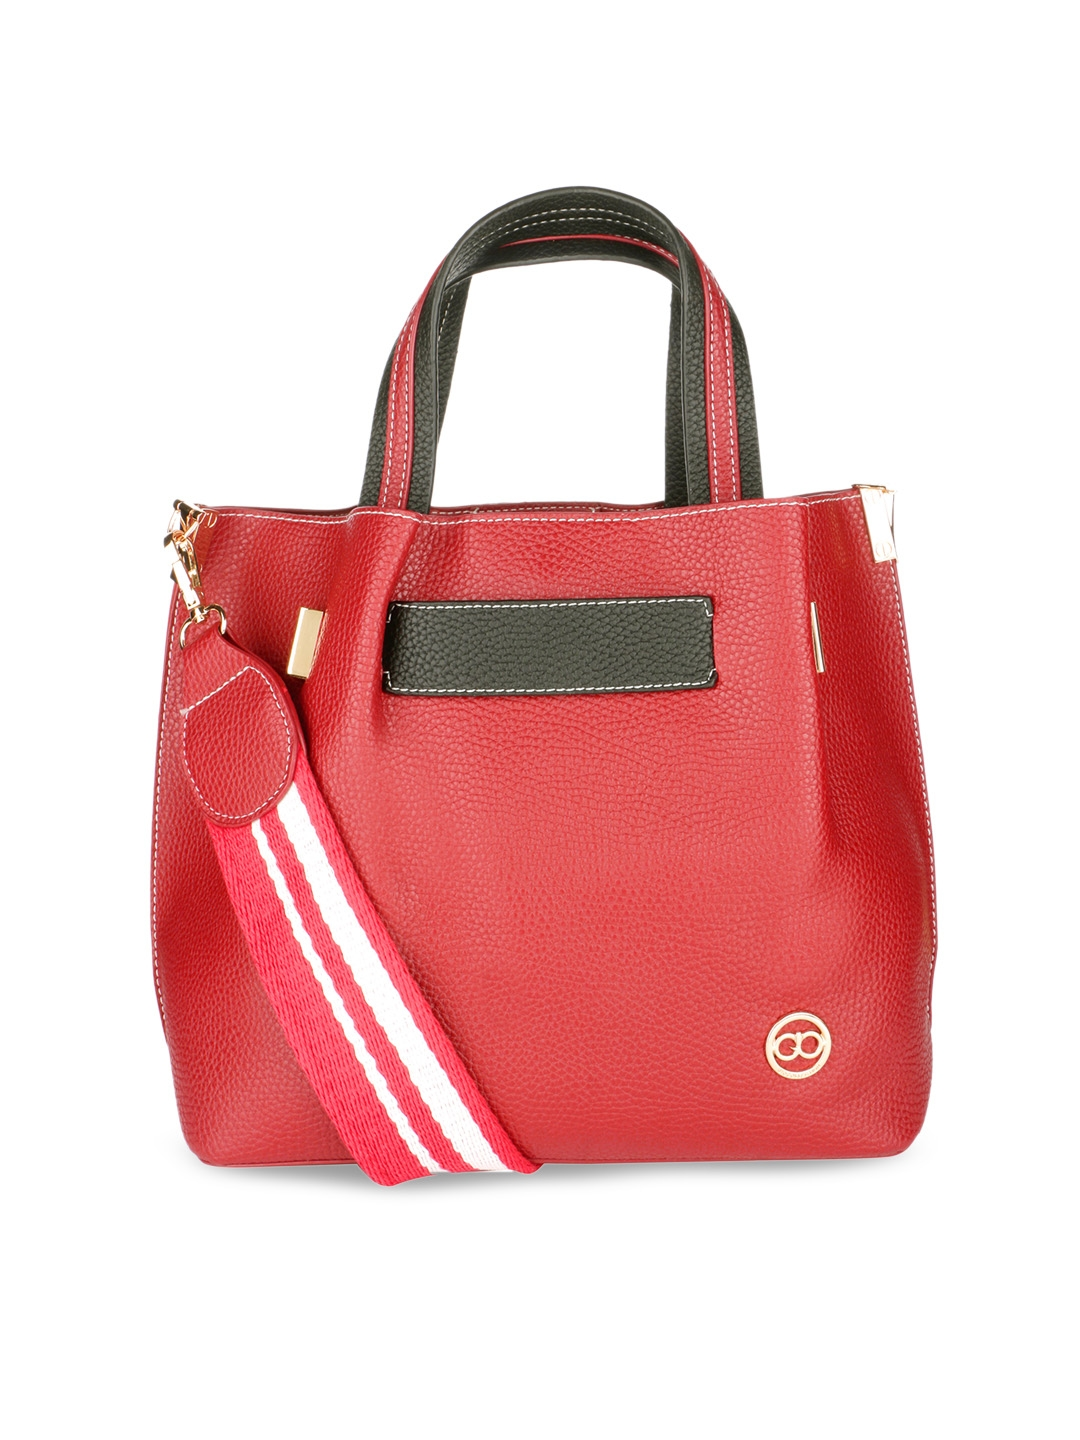 GIO COLLECTION Red Solid Shoulder Bag